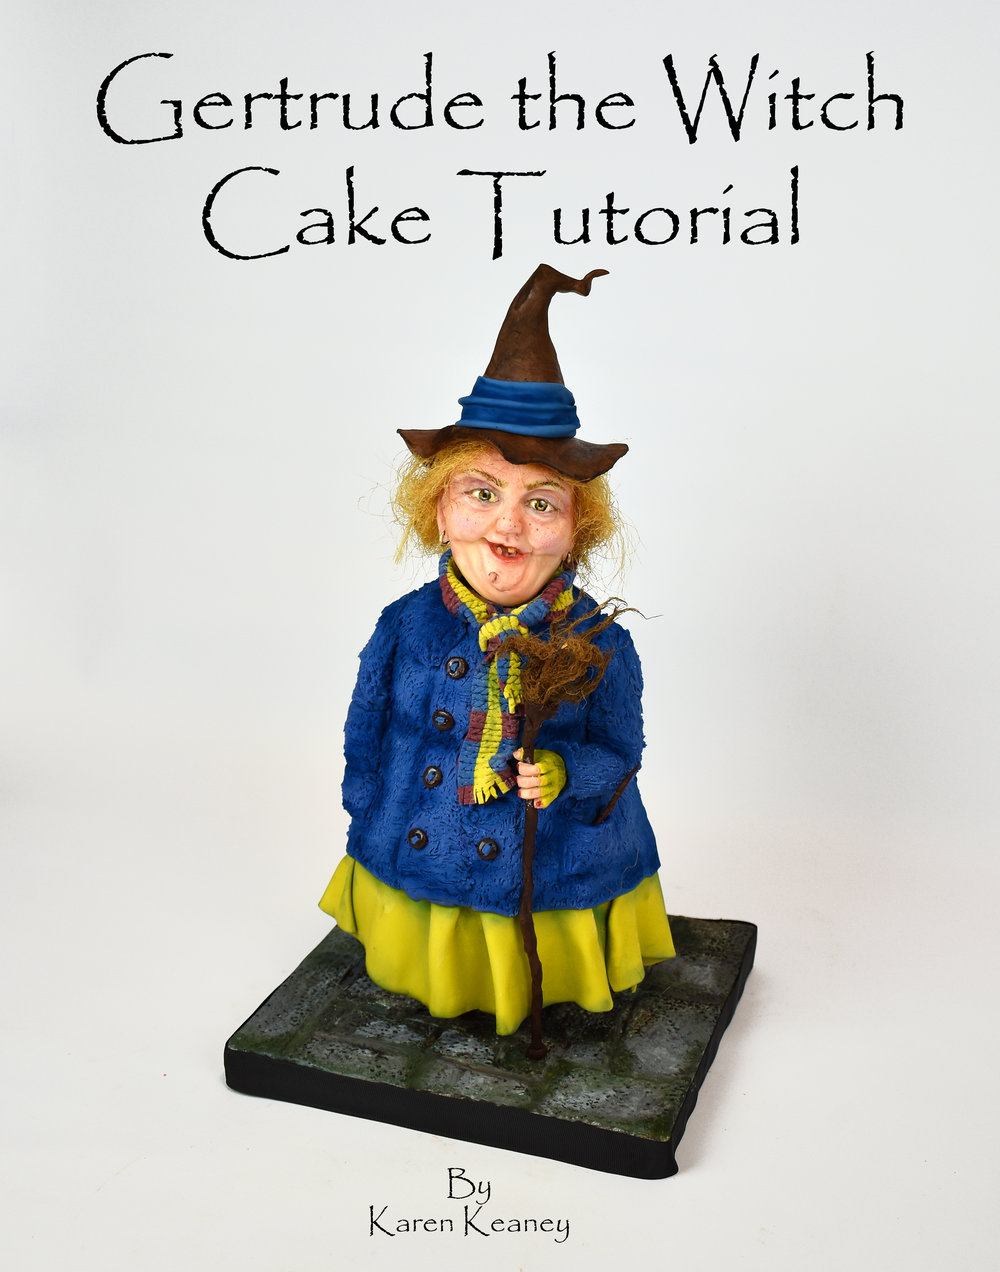 Gertrude the Witch Cake Tutorial